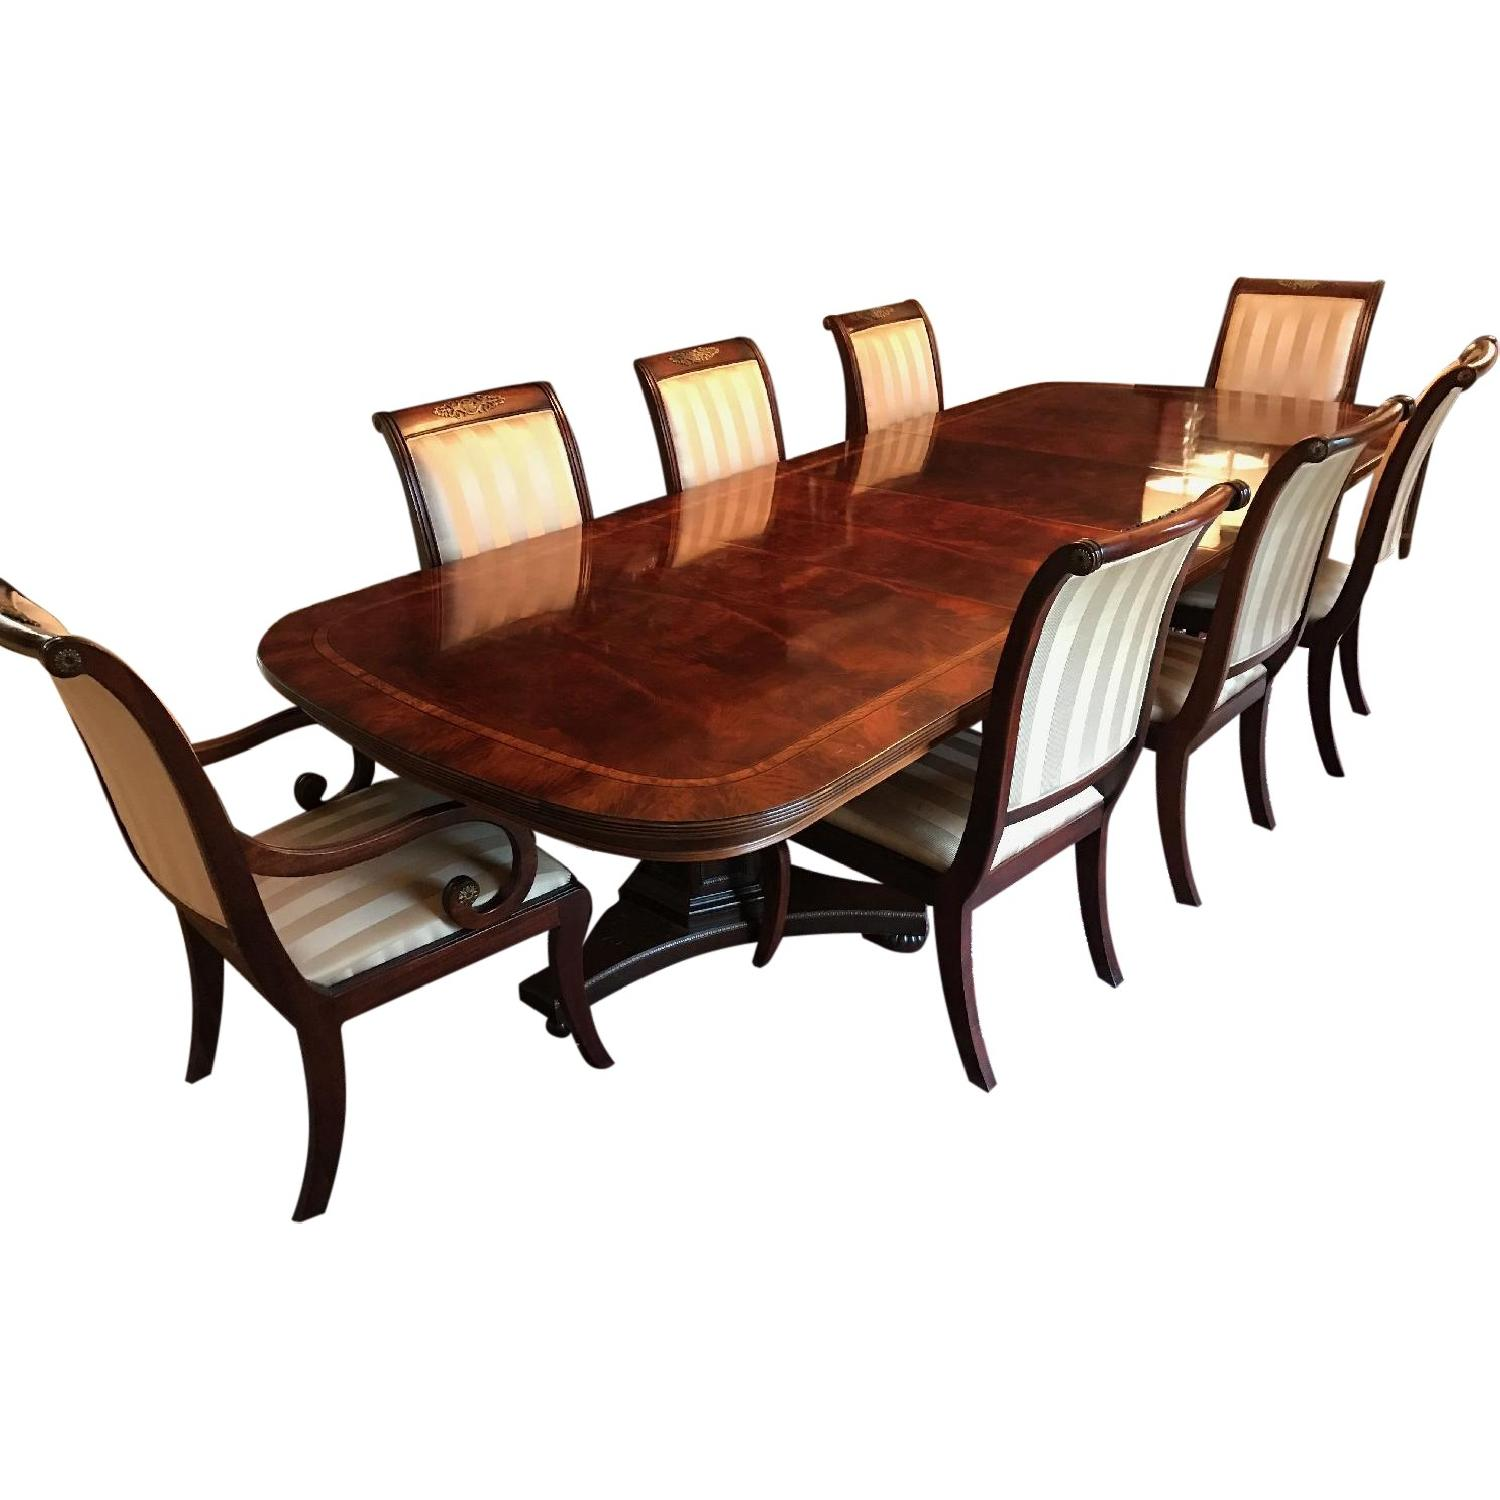 Henredon Dining Room Table W/ 8 Chairs ...